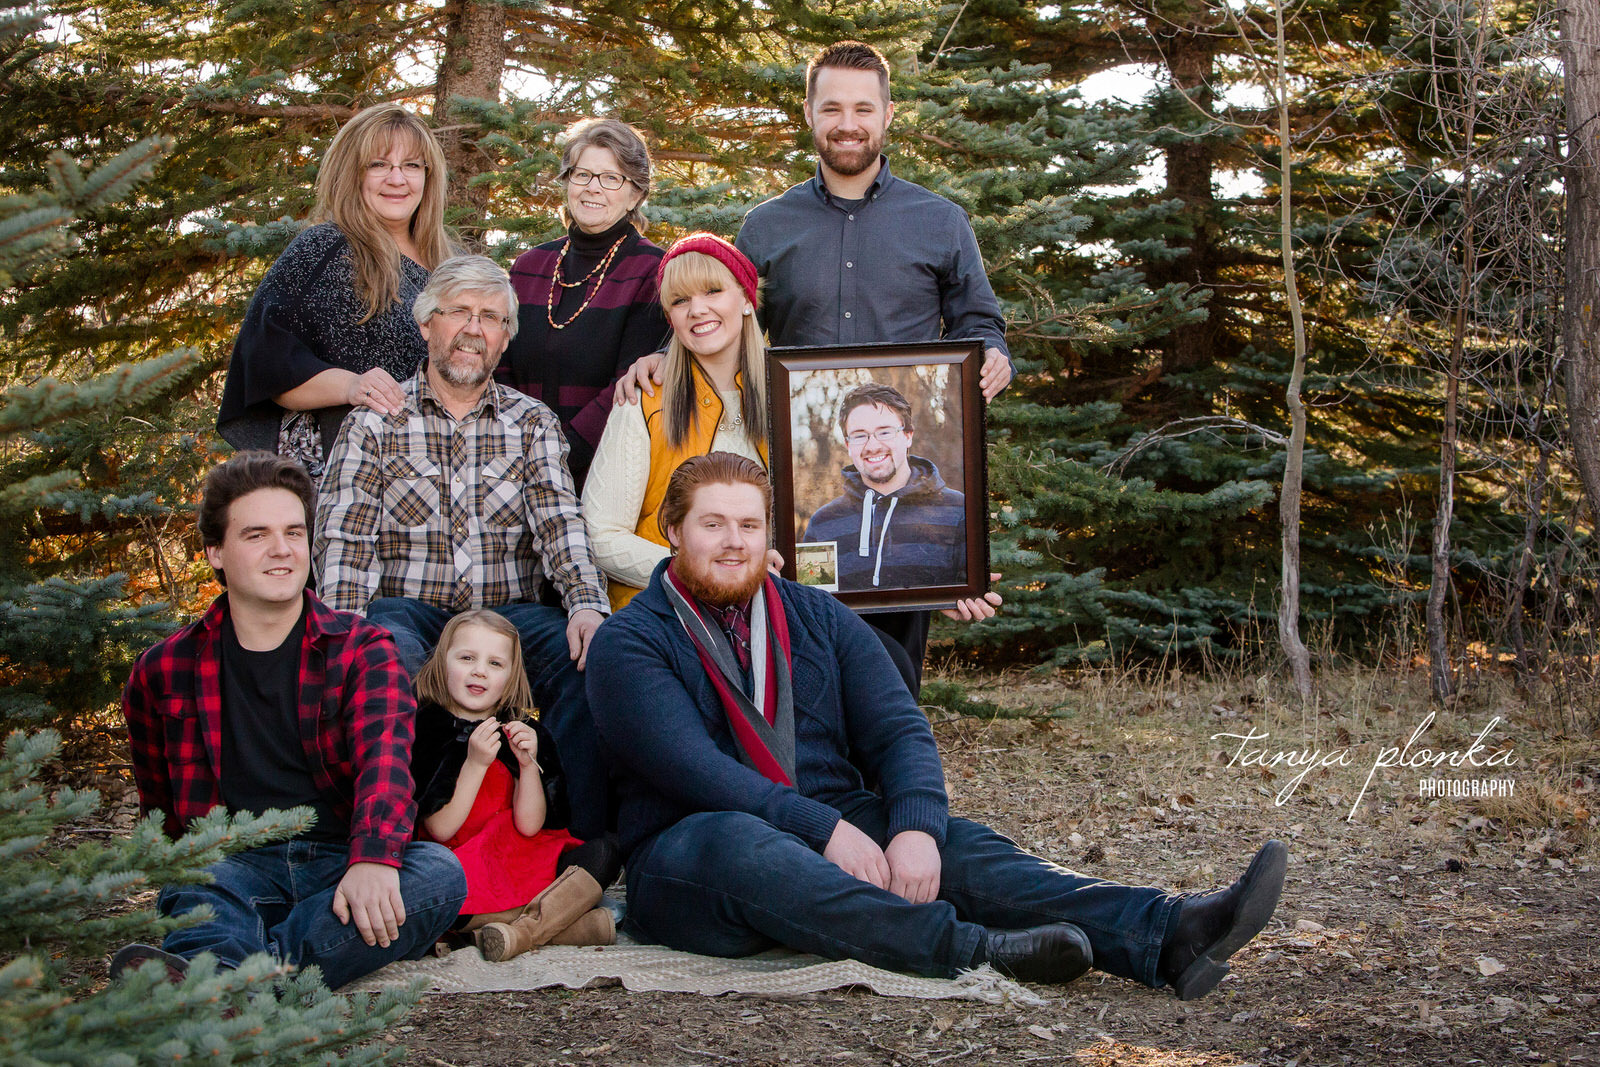 family poses in the late autumn holding photo of brother in memory